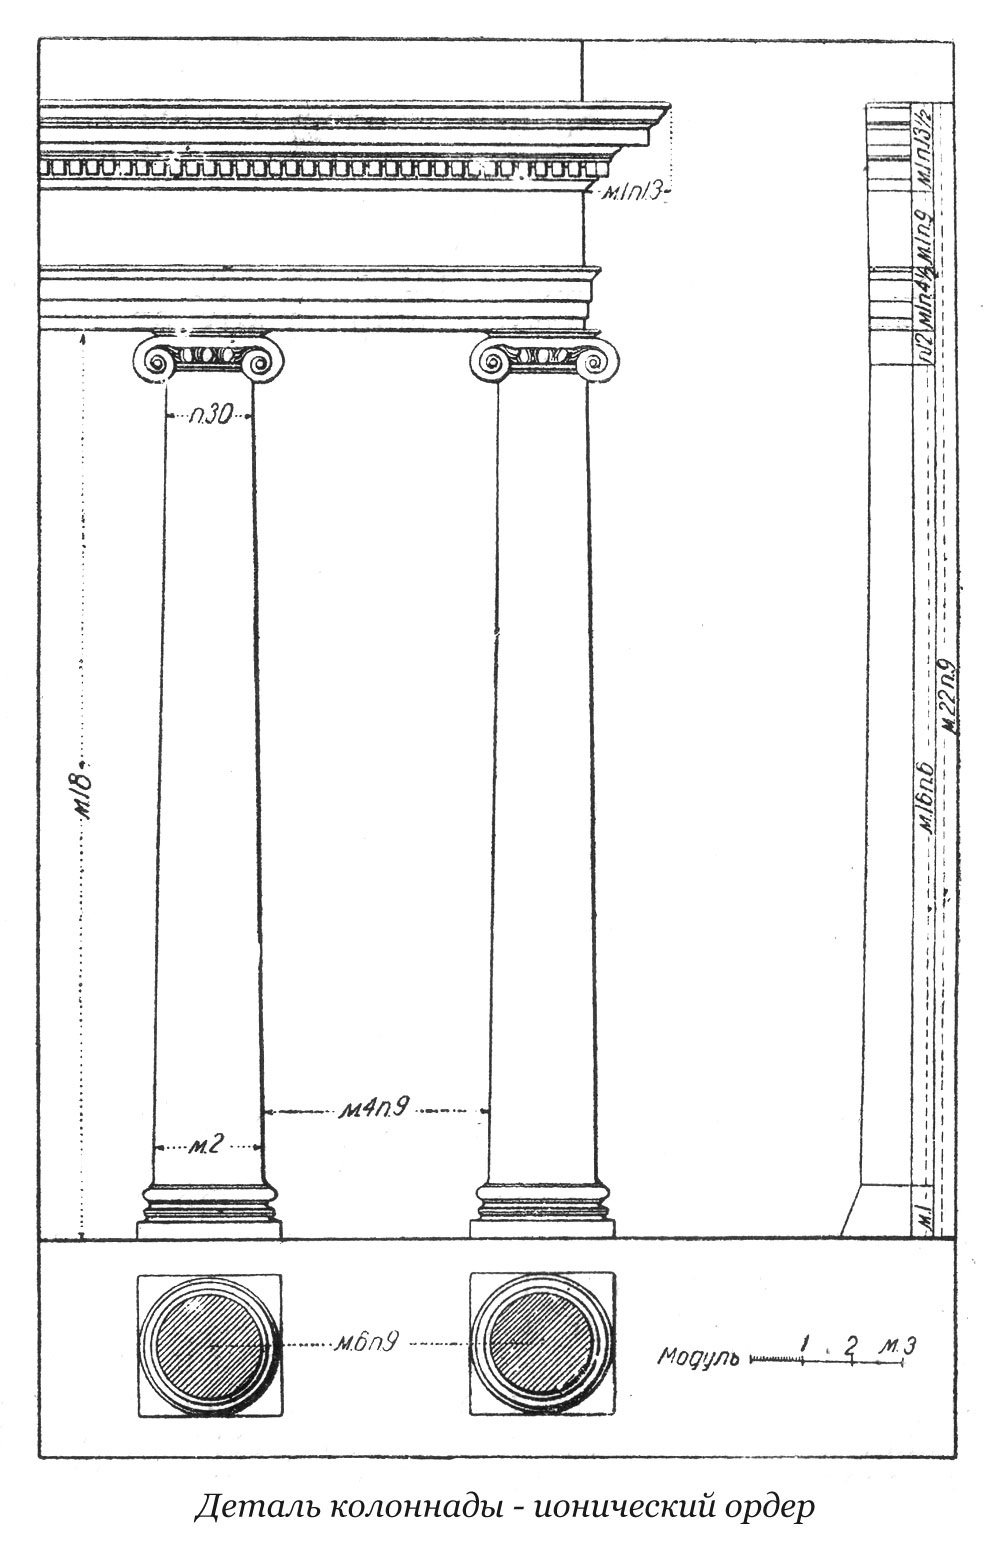 ionic-order_colonnade-2